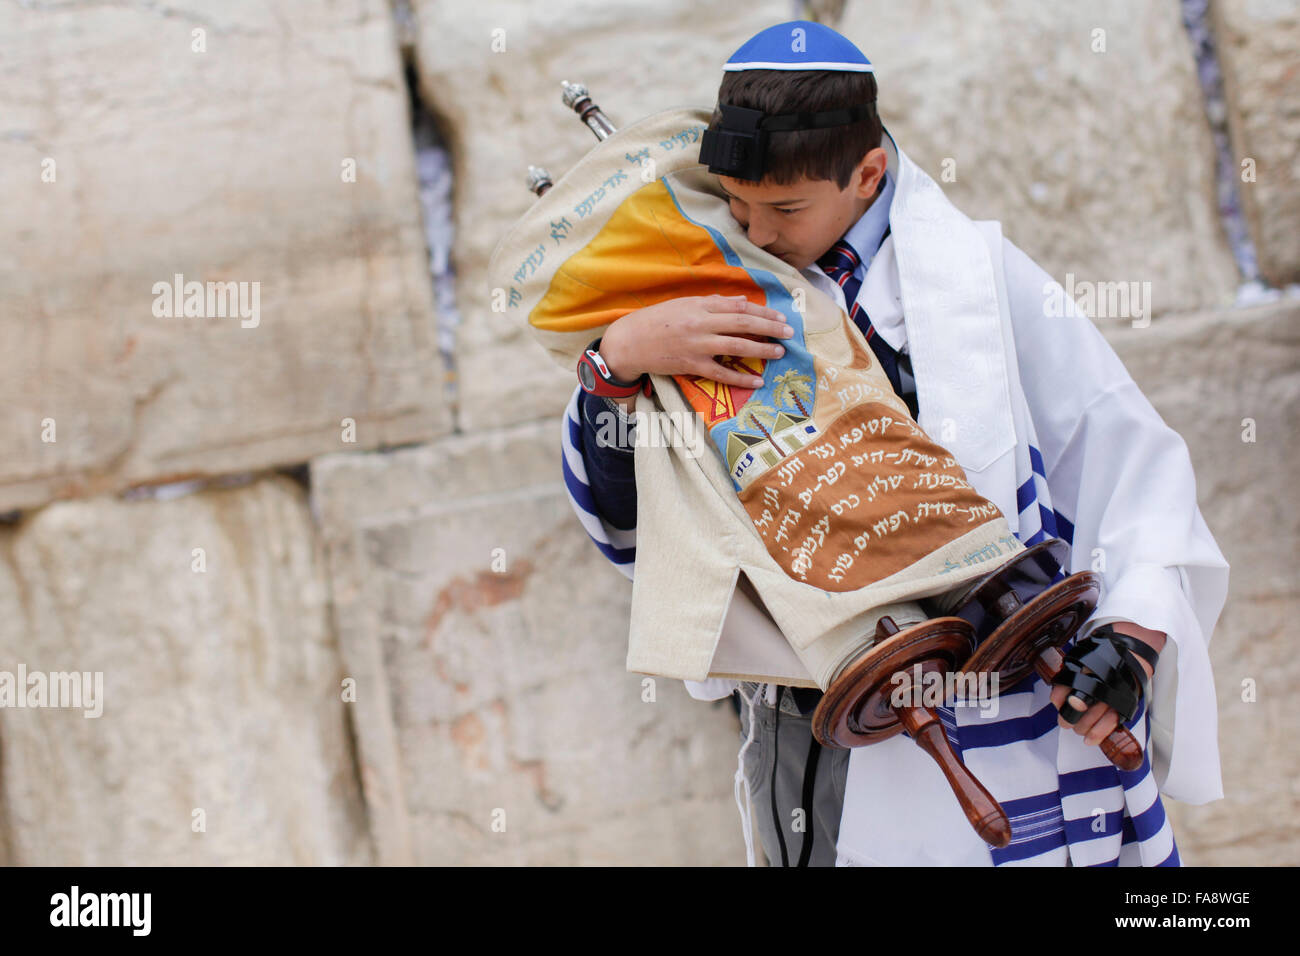 A young Jewish boy celebrates his Bar Mitzvah at the Western Wall also known as the Wailing Wall in Jerusalem, Israel. - Stock Image